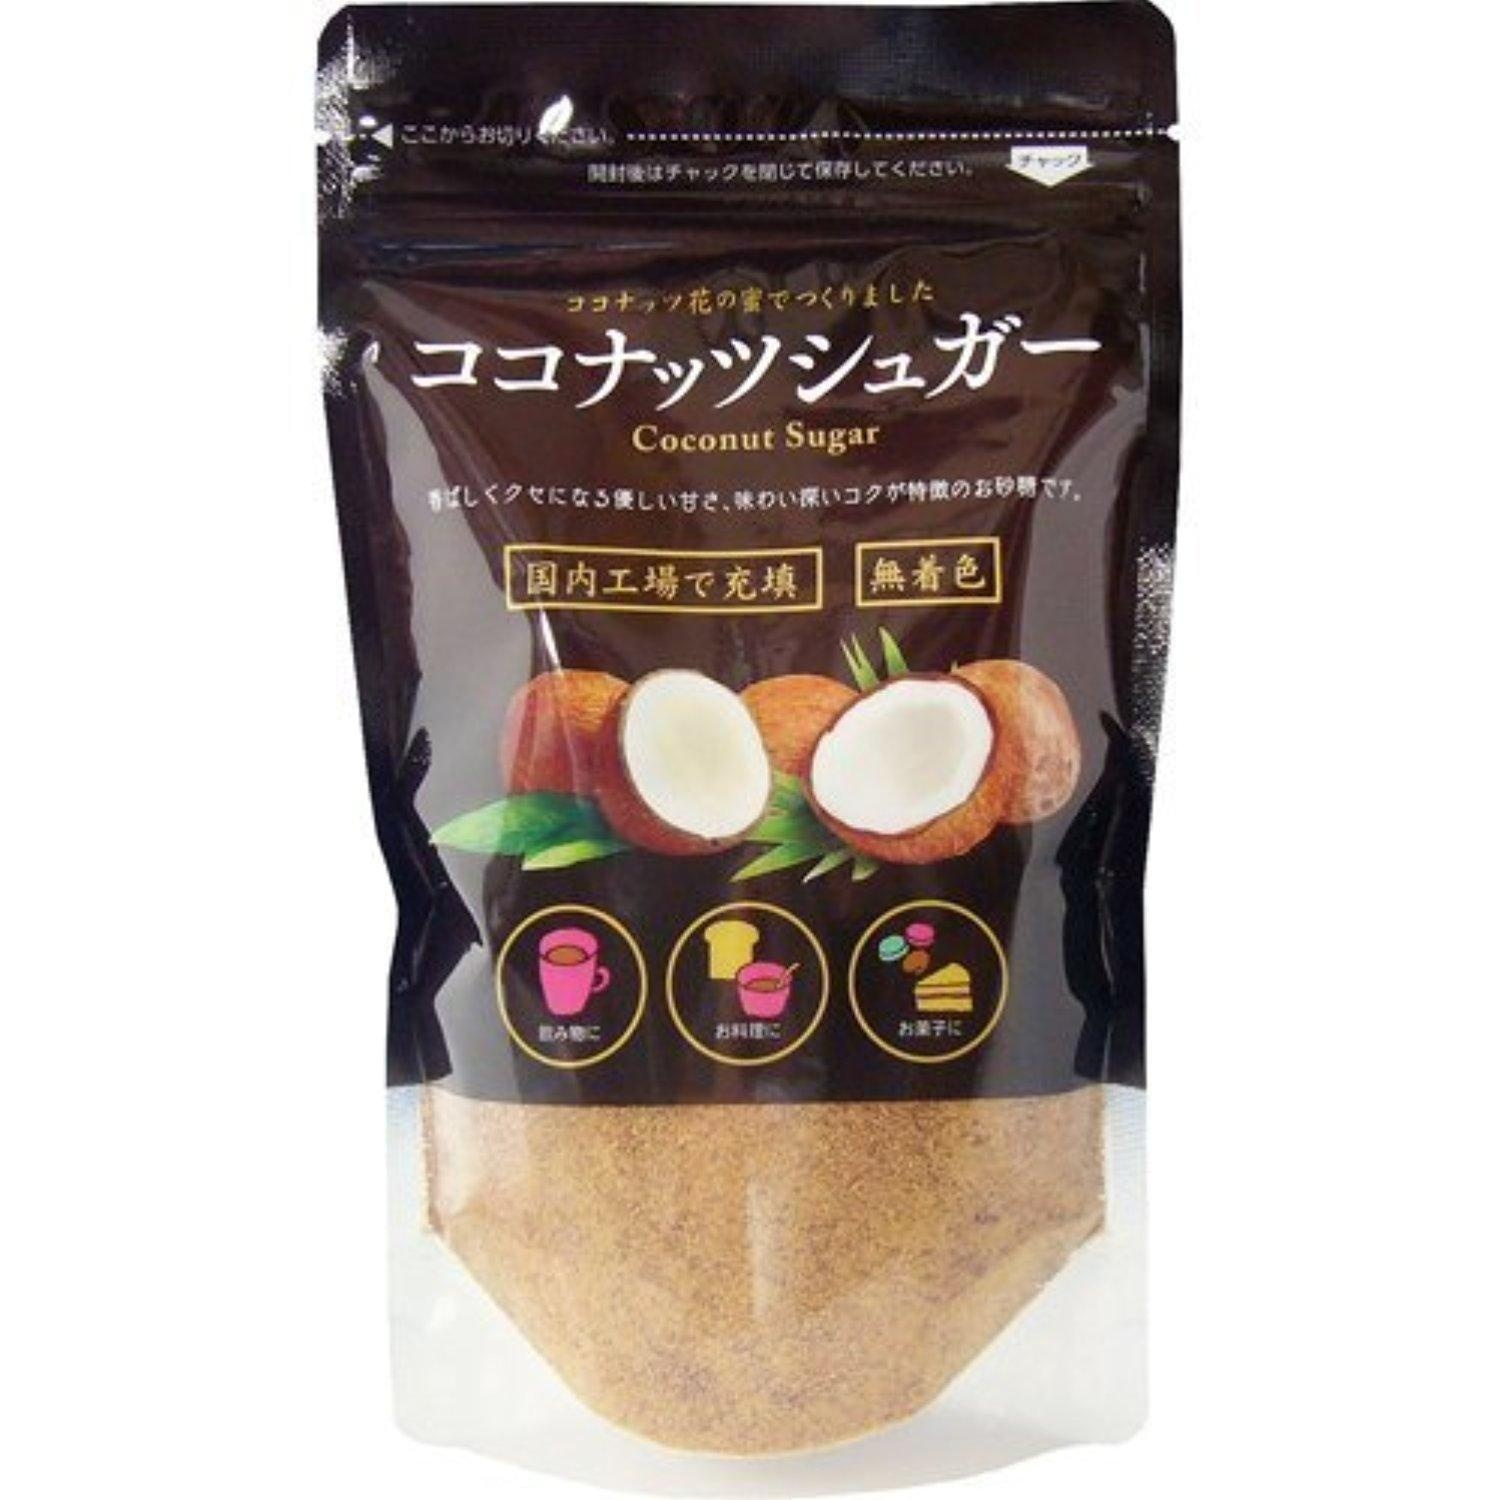 Coconut sugar 200g by Filled with coconut sugar domestic plants